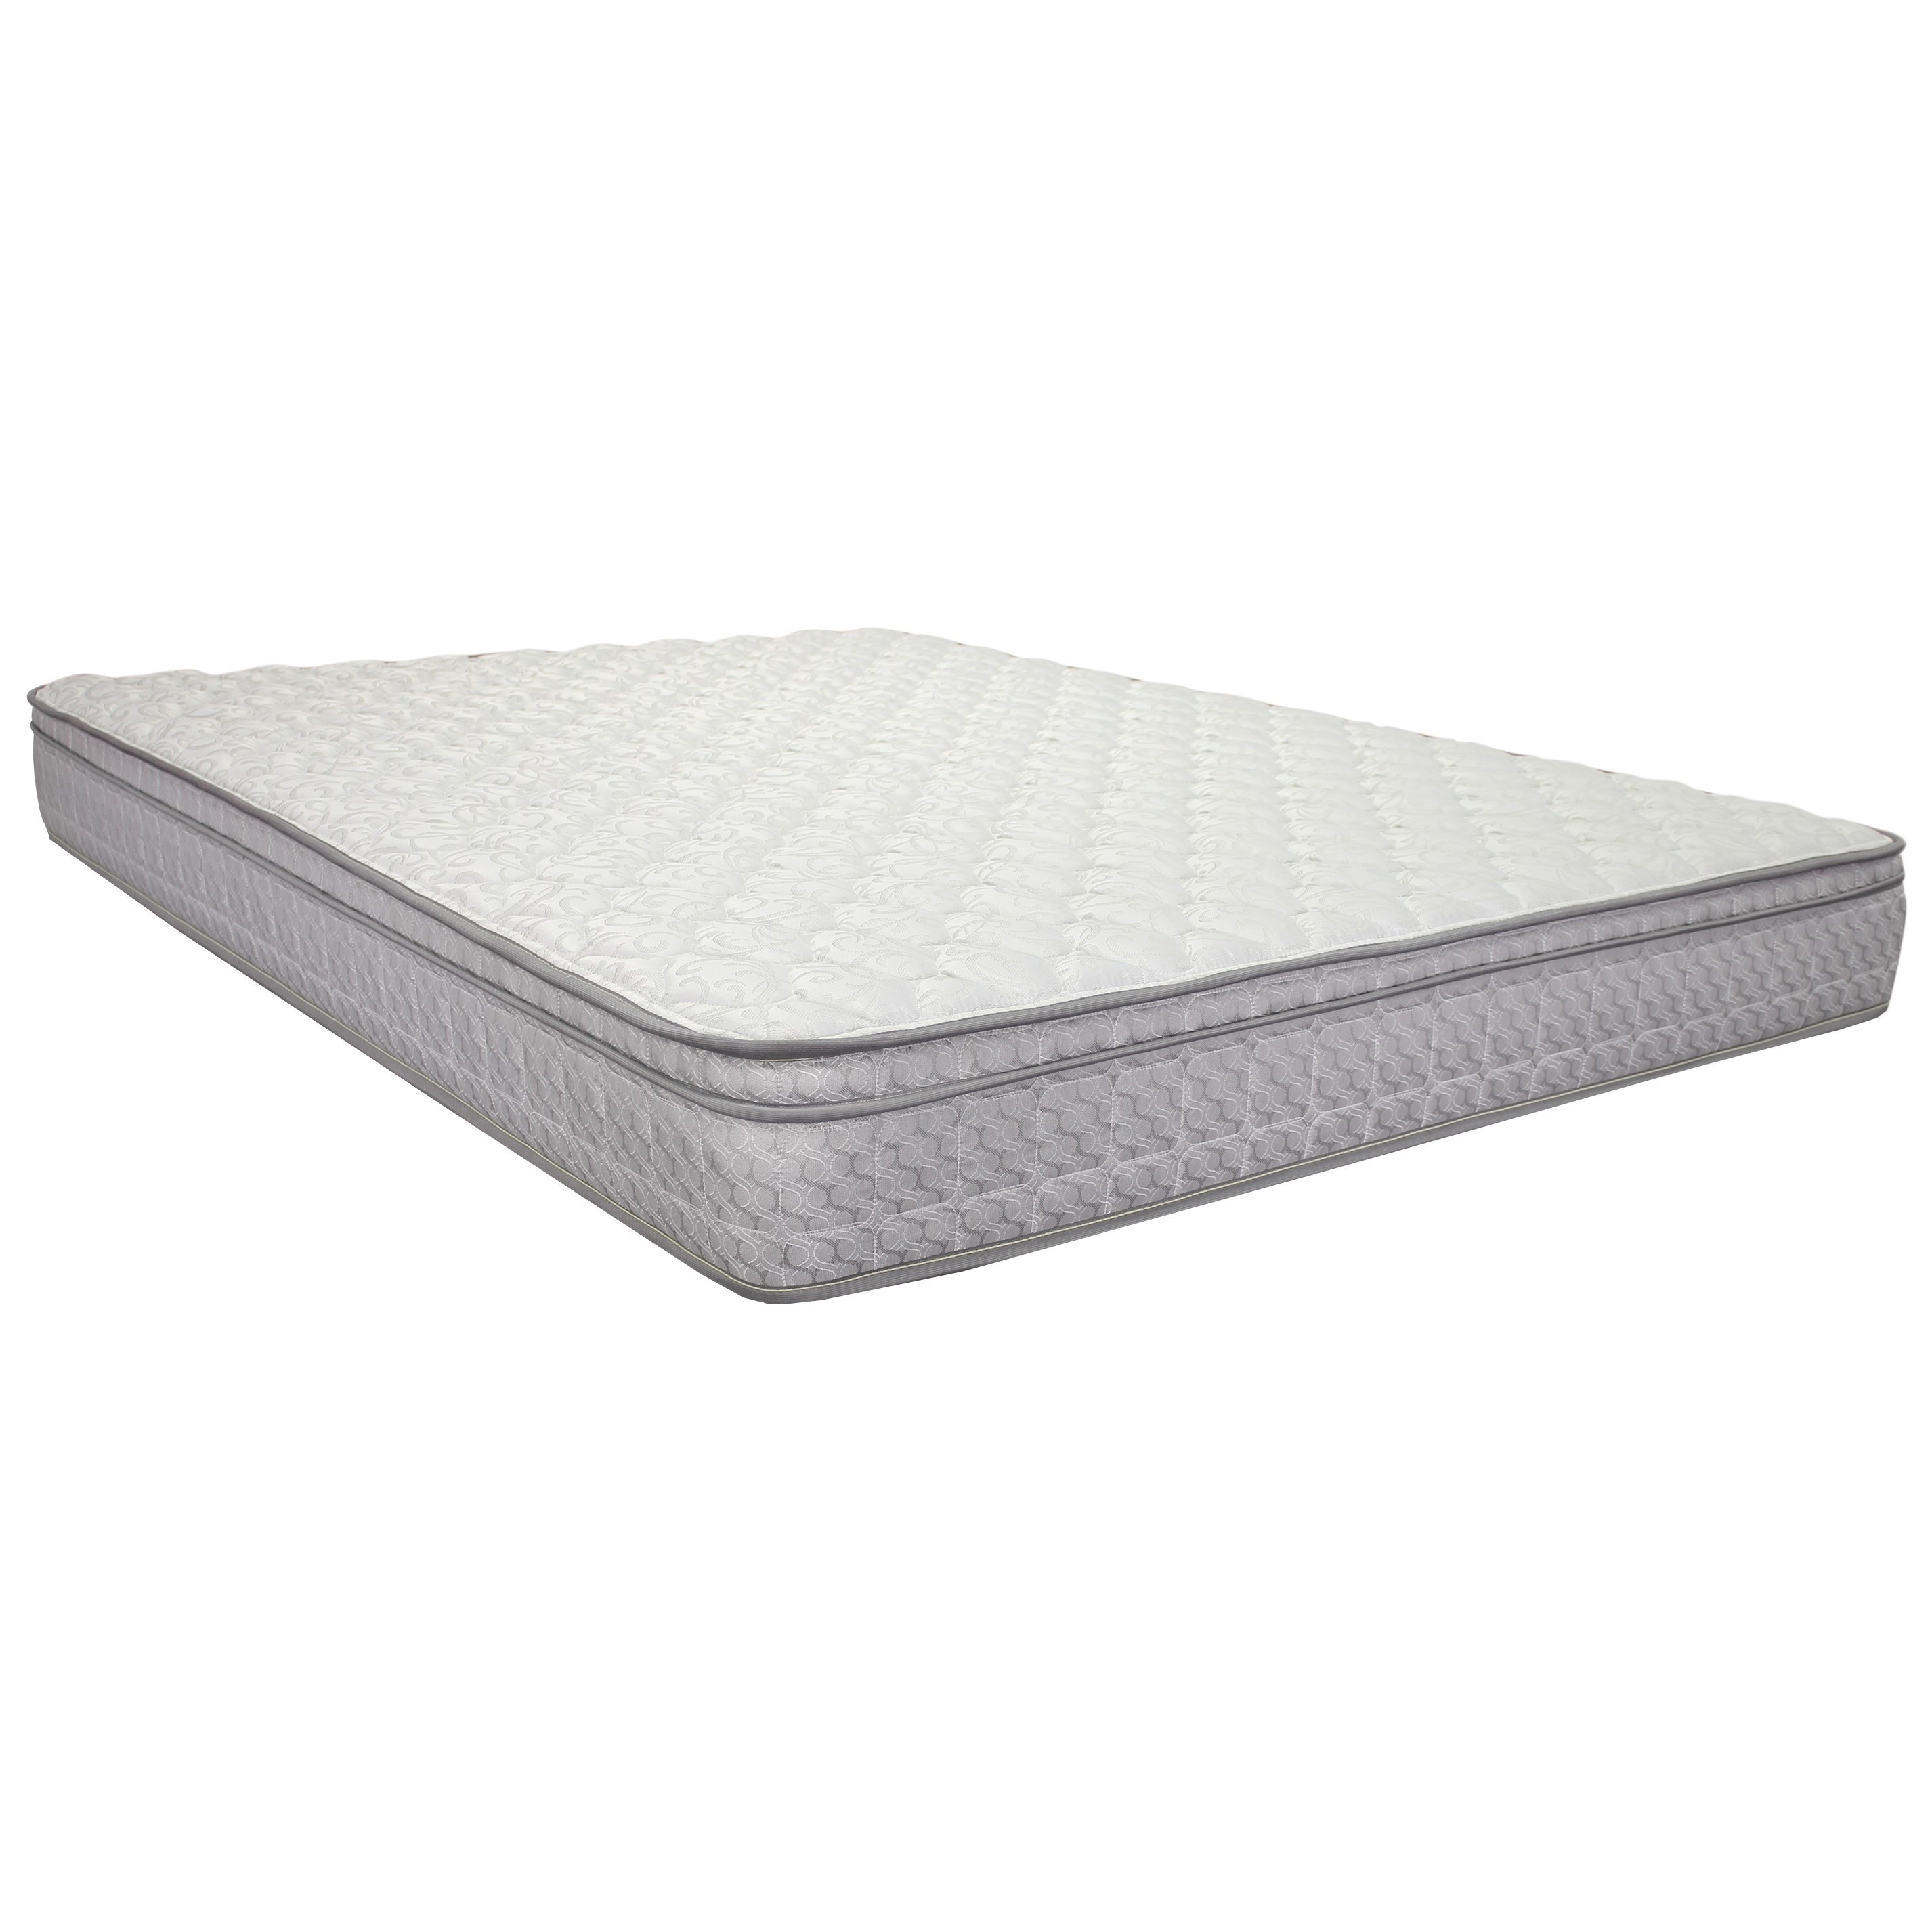 "Queen 8 1/2"" All Foam Mattress"